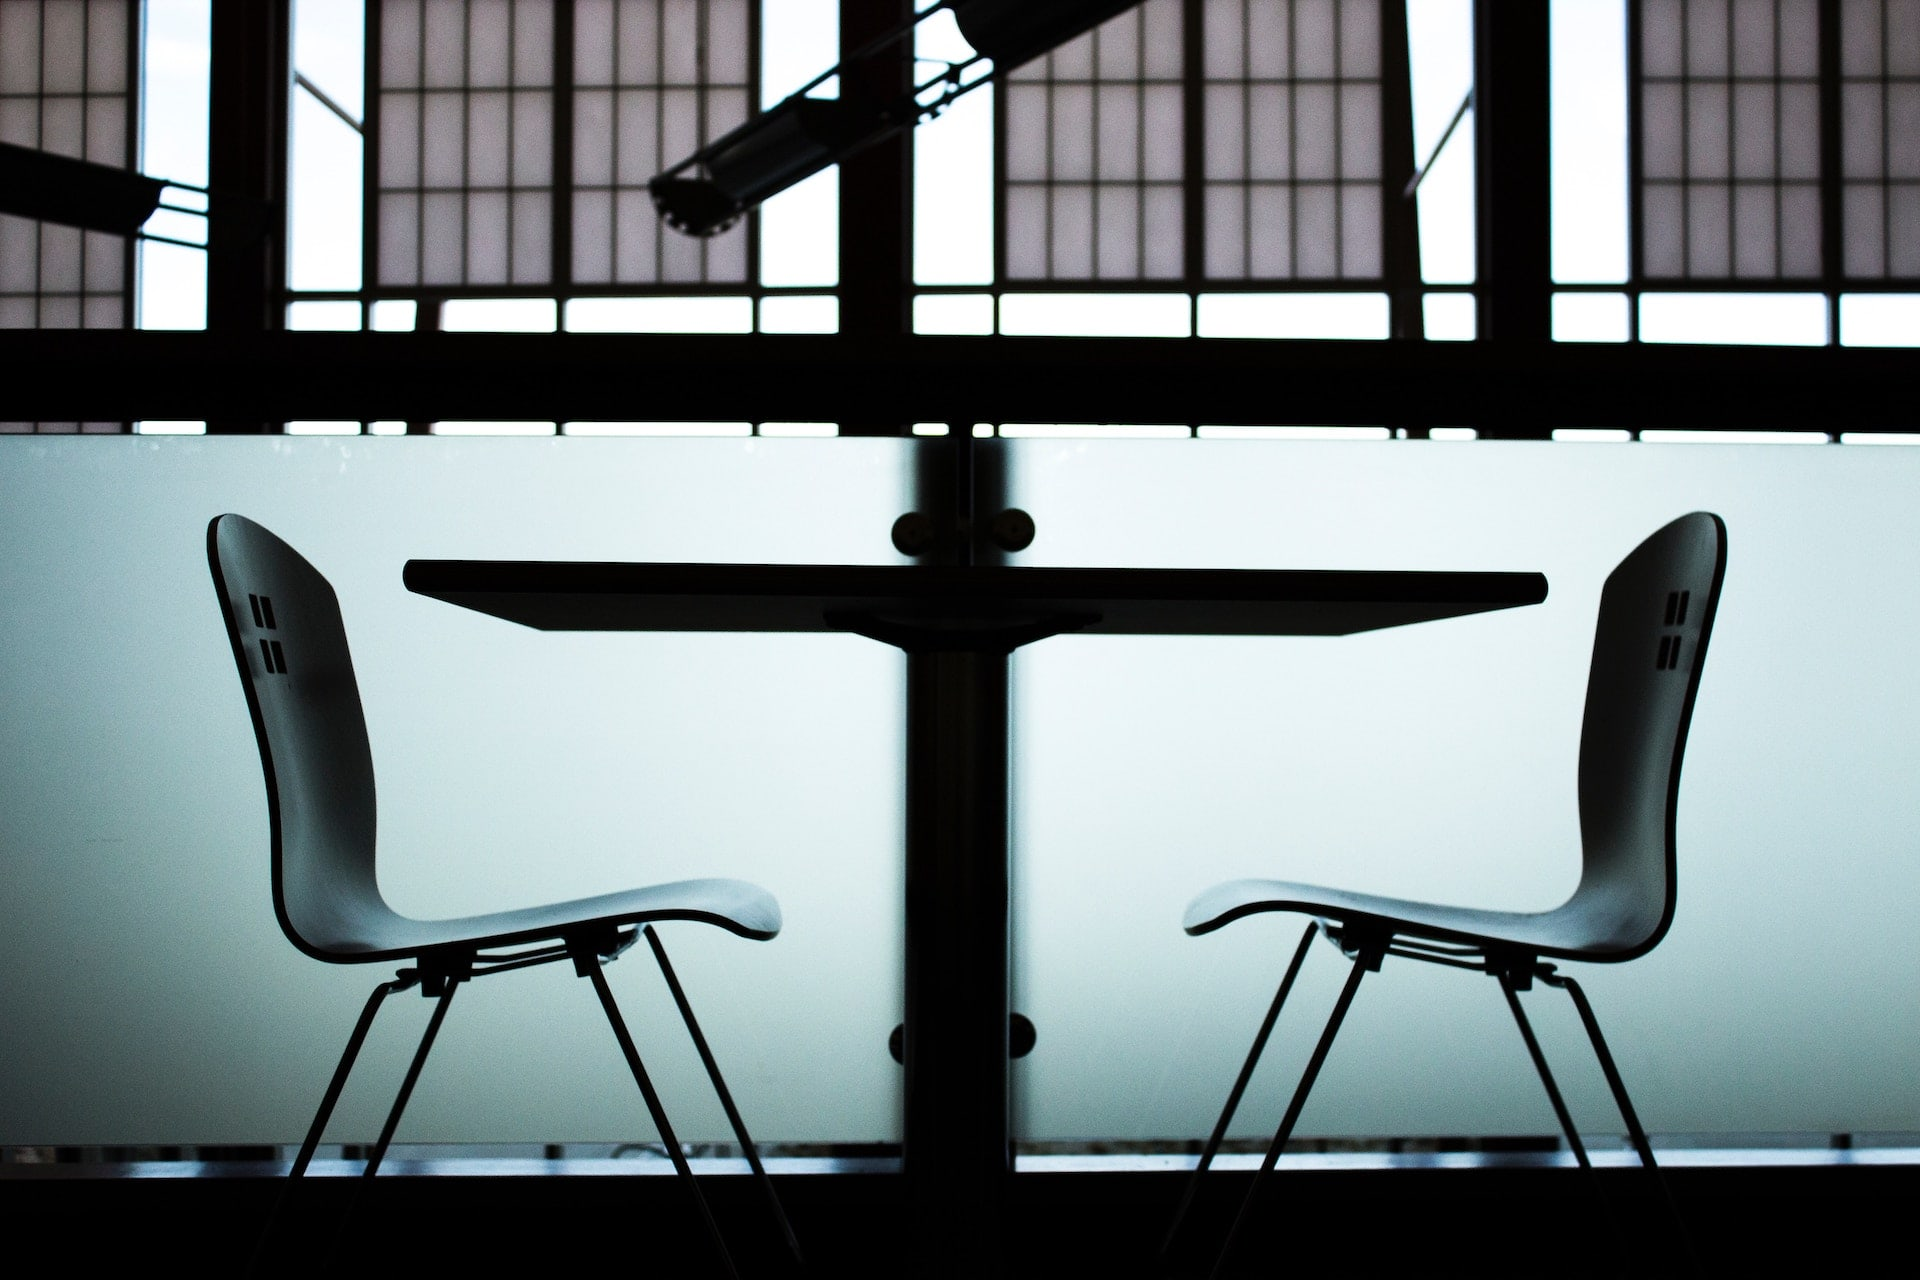 image of two chairs opposite to each other